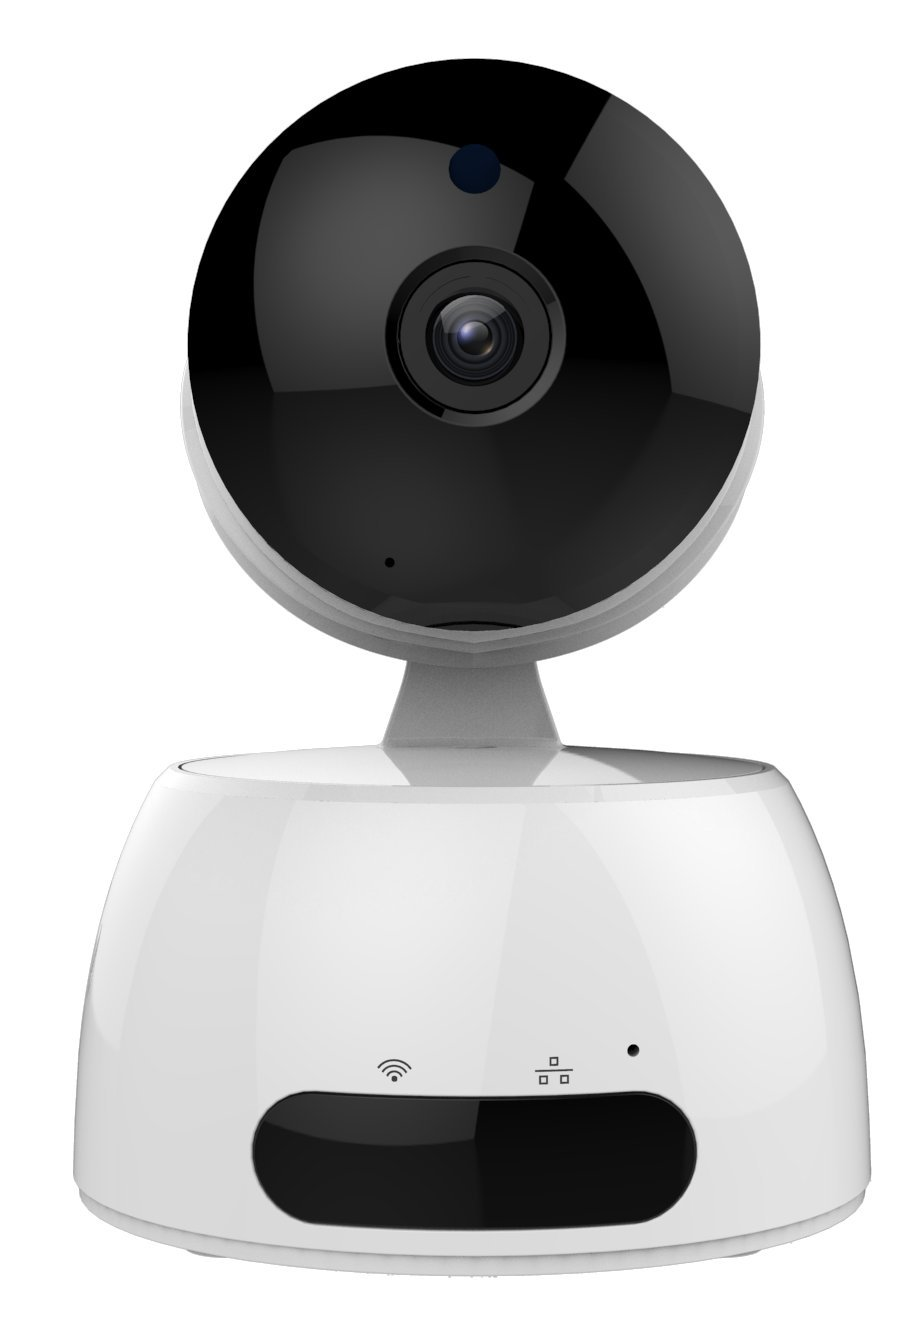 Fusion5 Advanced IP Camera - HD, Two-way Audio Speaker Support, Motion Detector, Video Recording, remote security webcam, dog cam, baby monitor camera